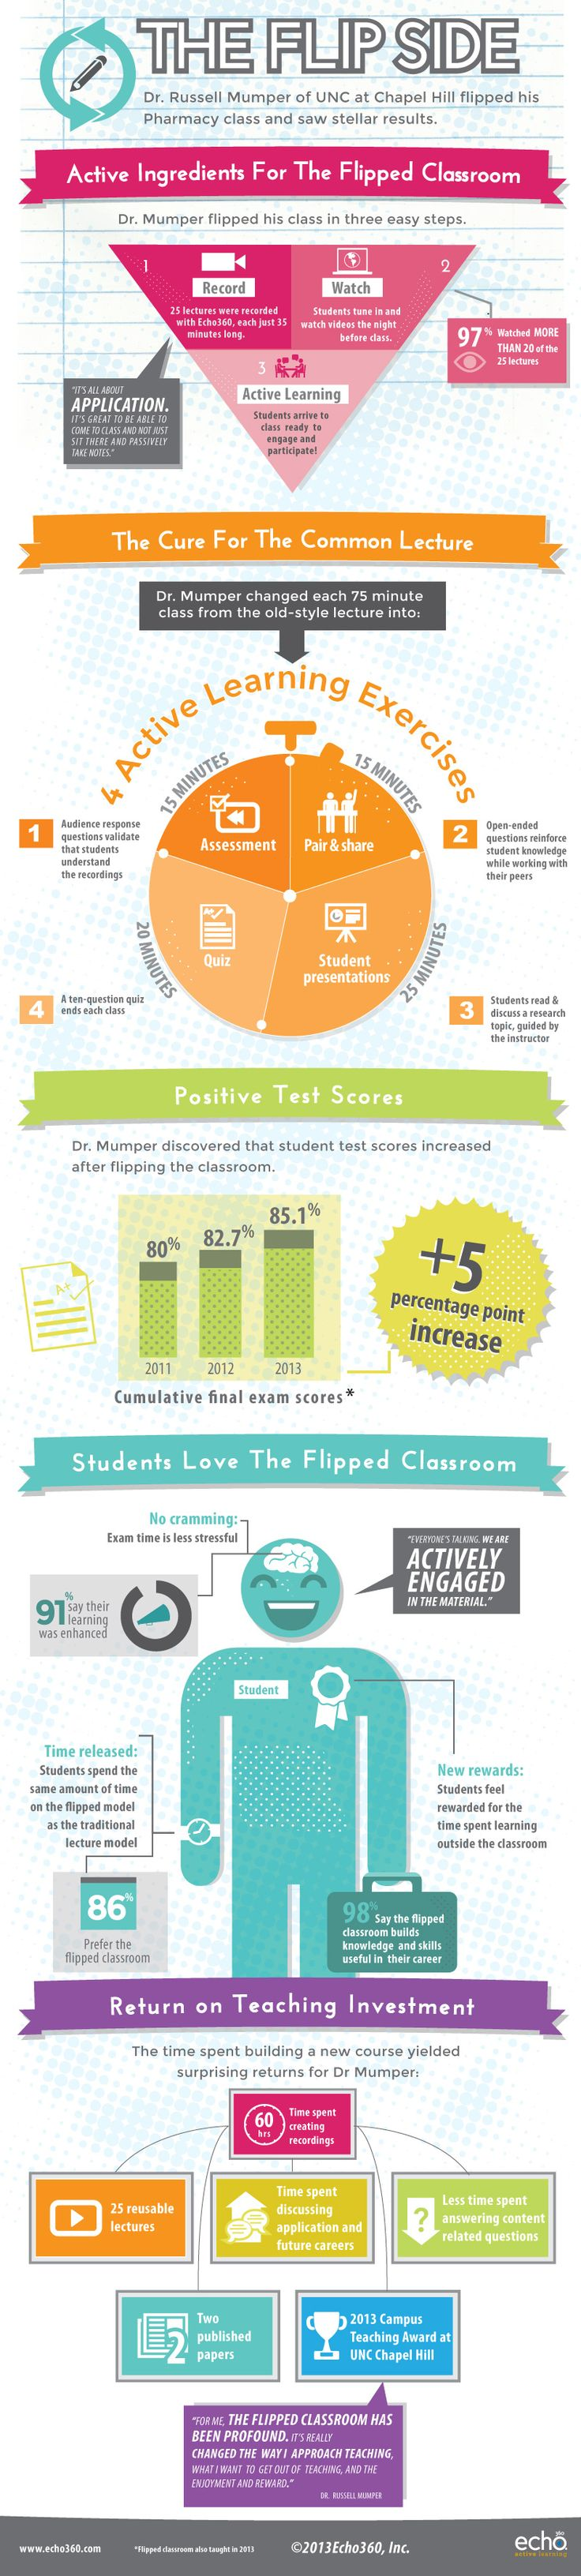 Pretty cool! An infographic showing some of the benefits of a flipped classroom